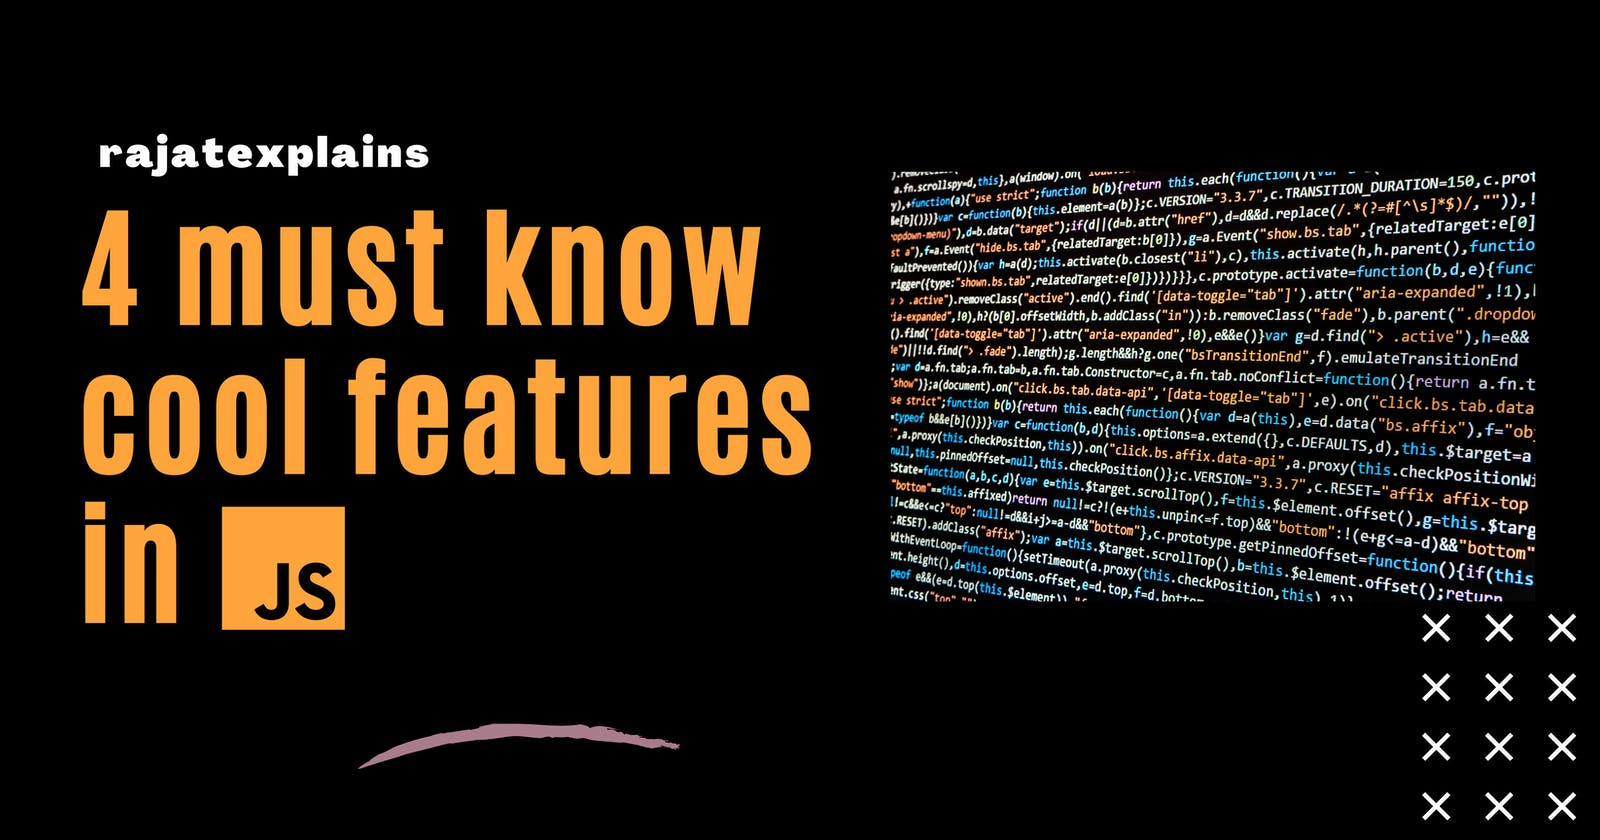 4 must know cool features in Javascript